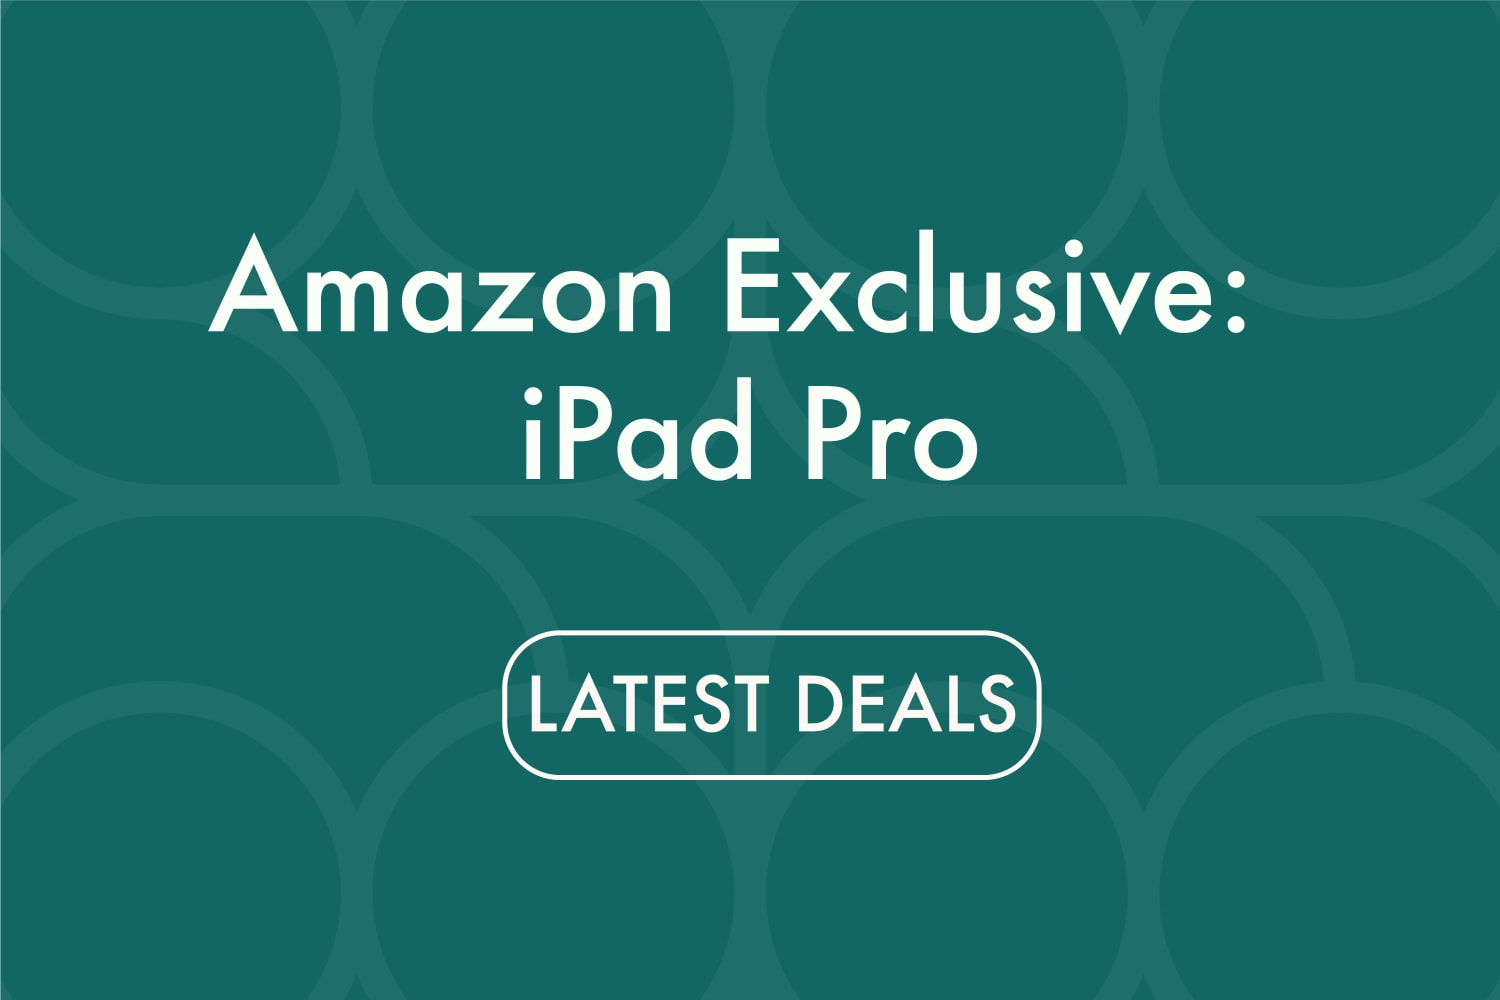 best-ipad-pro-deals-on-amazon-you-don-t-want-to-miss-today-20200929-1